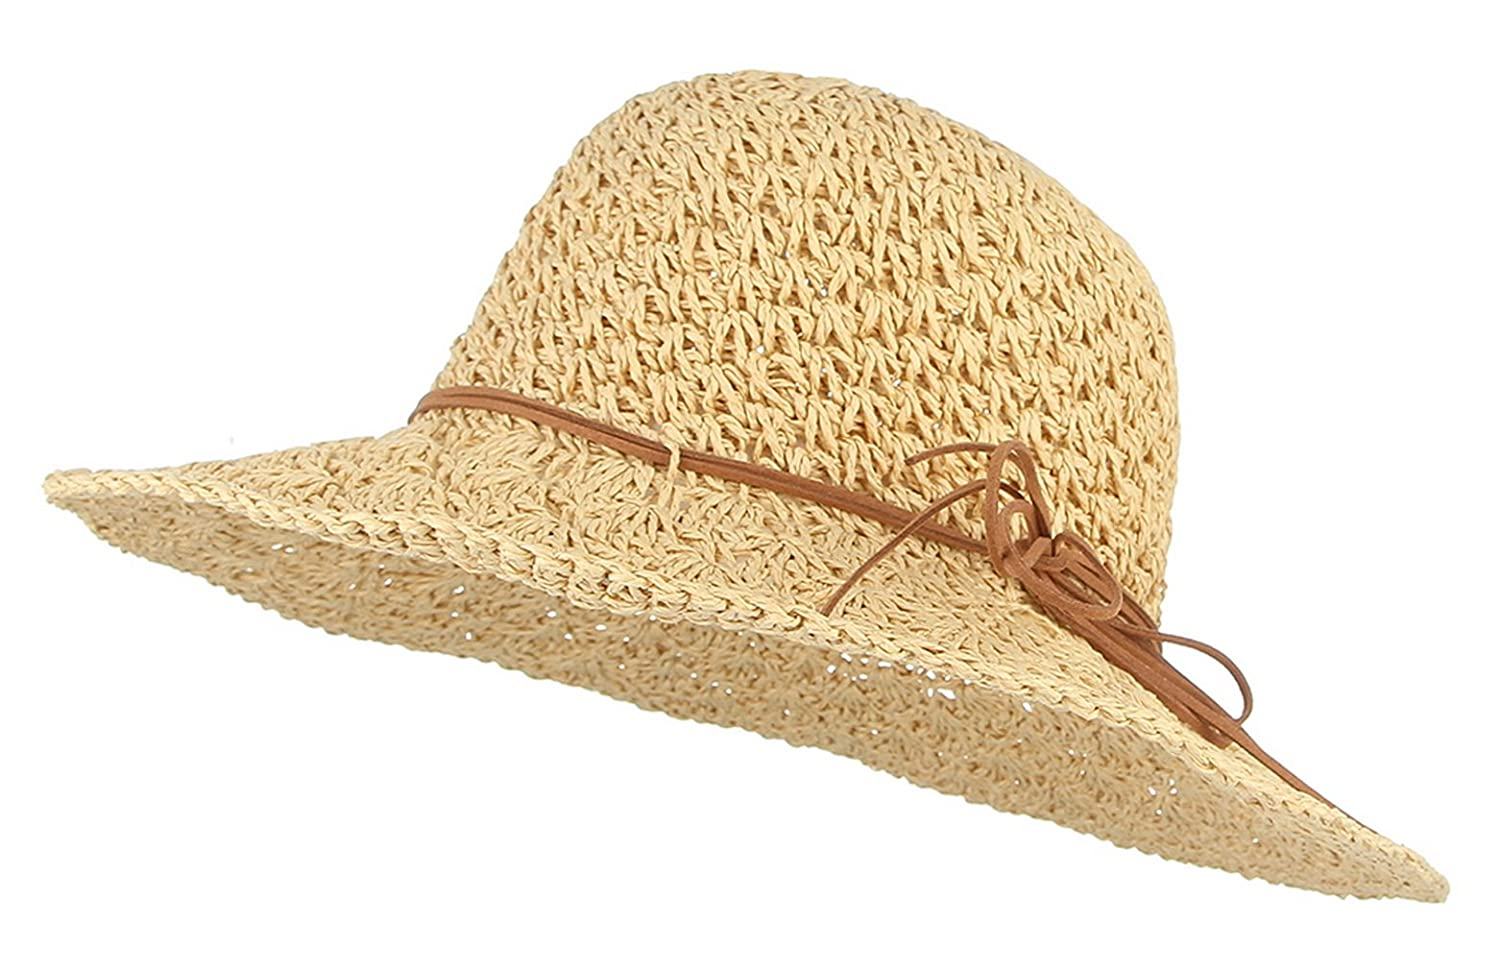 Gemvie Women's Wide Brim Straw Panama Hat Beach Bucket Sun Hat Packable